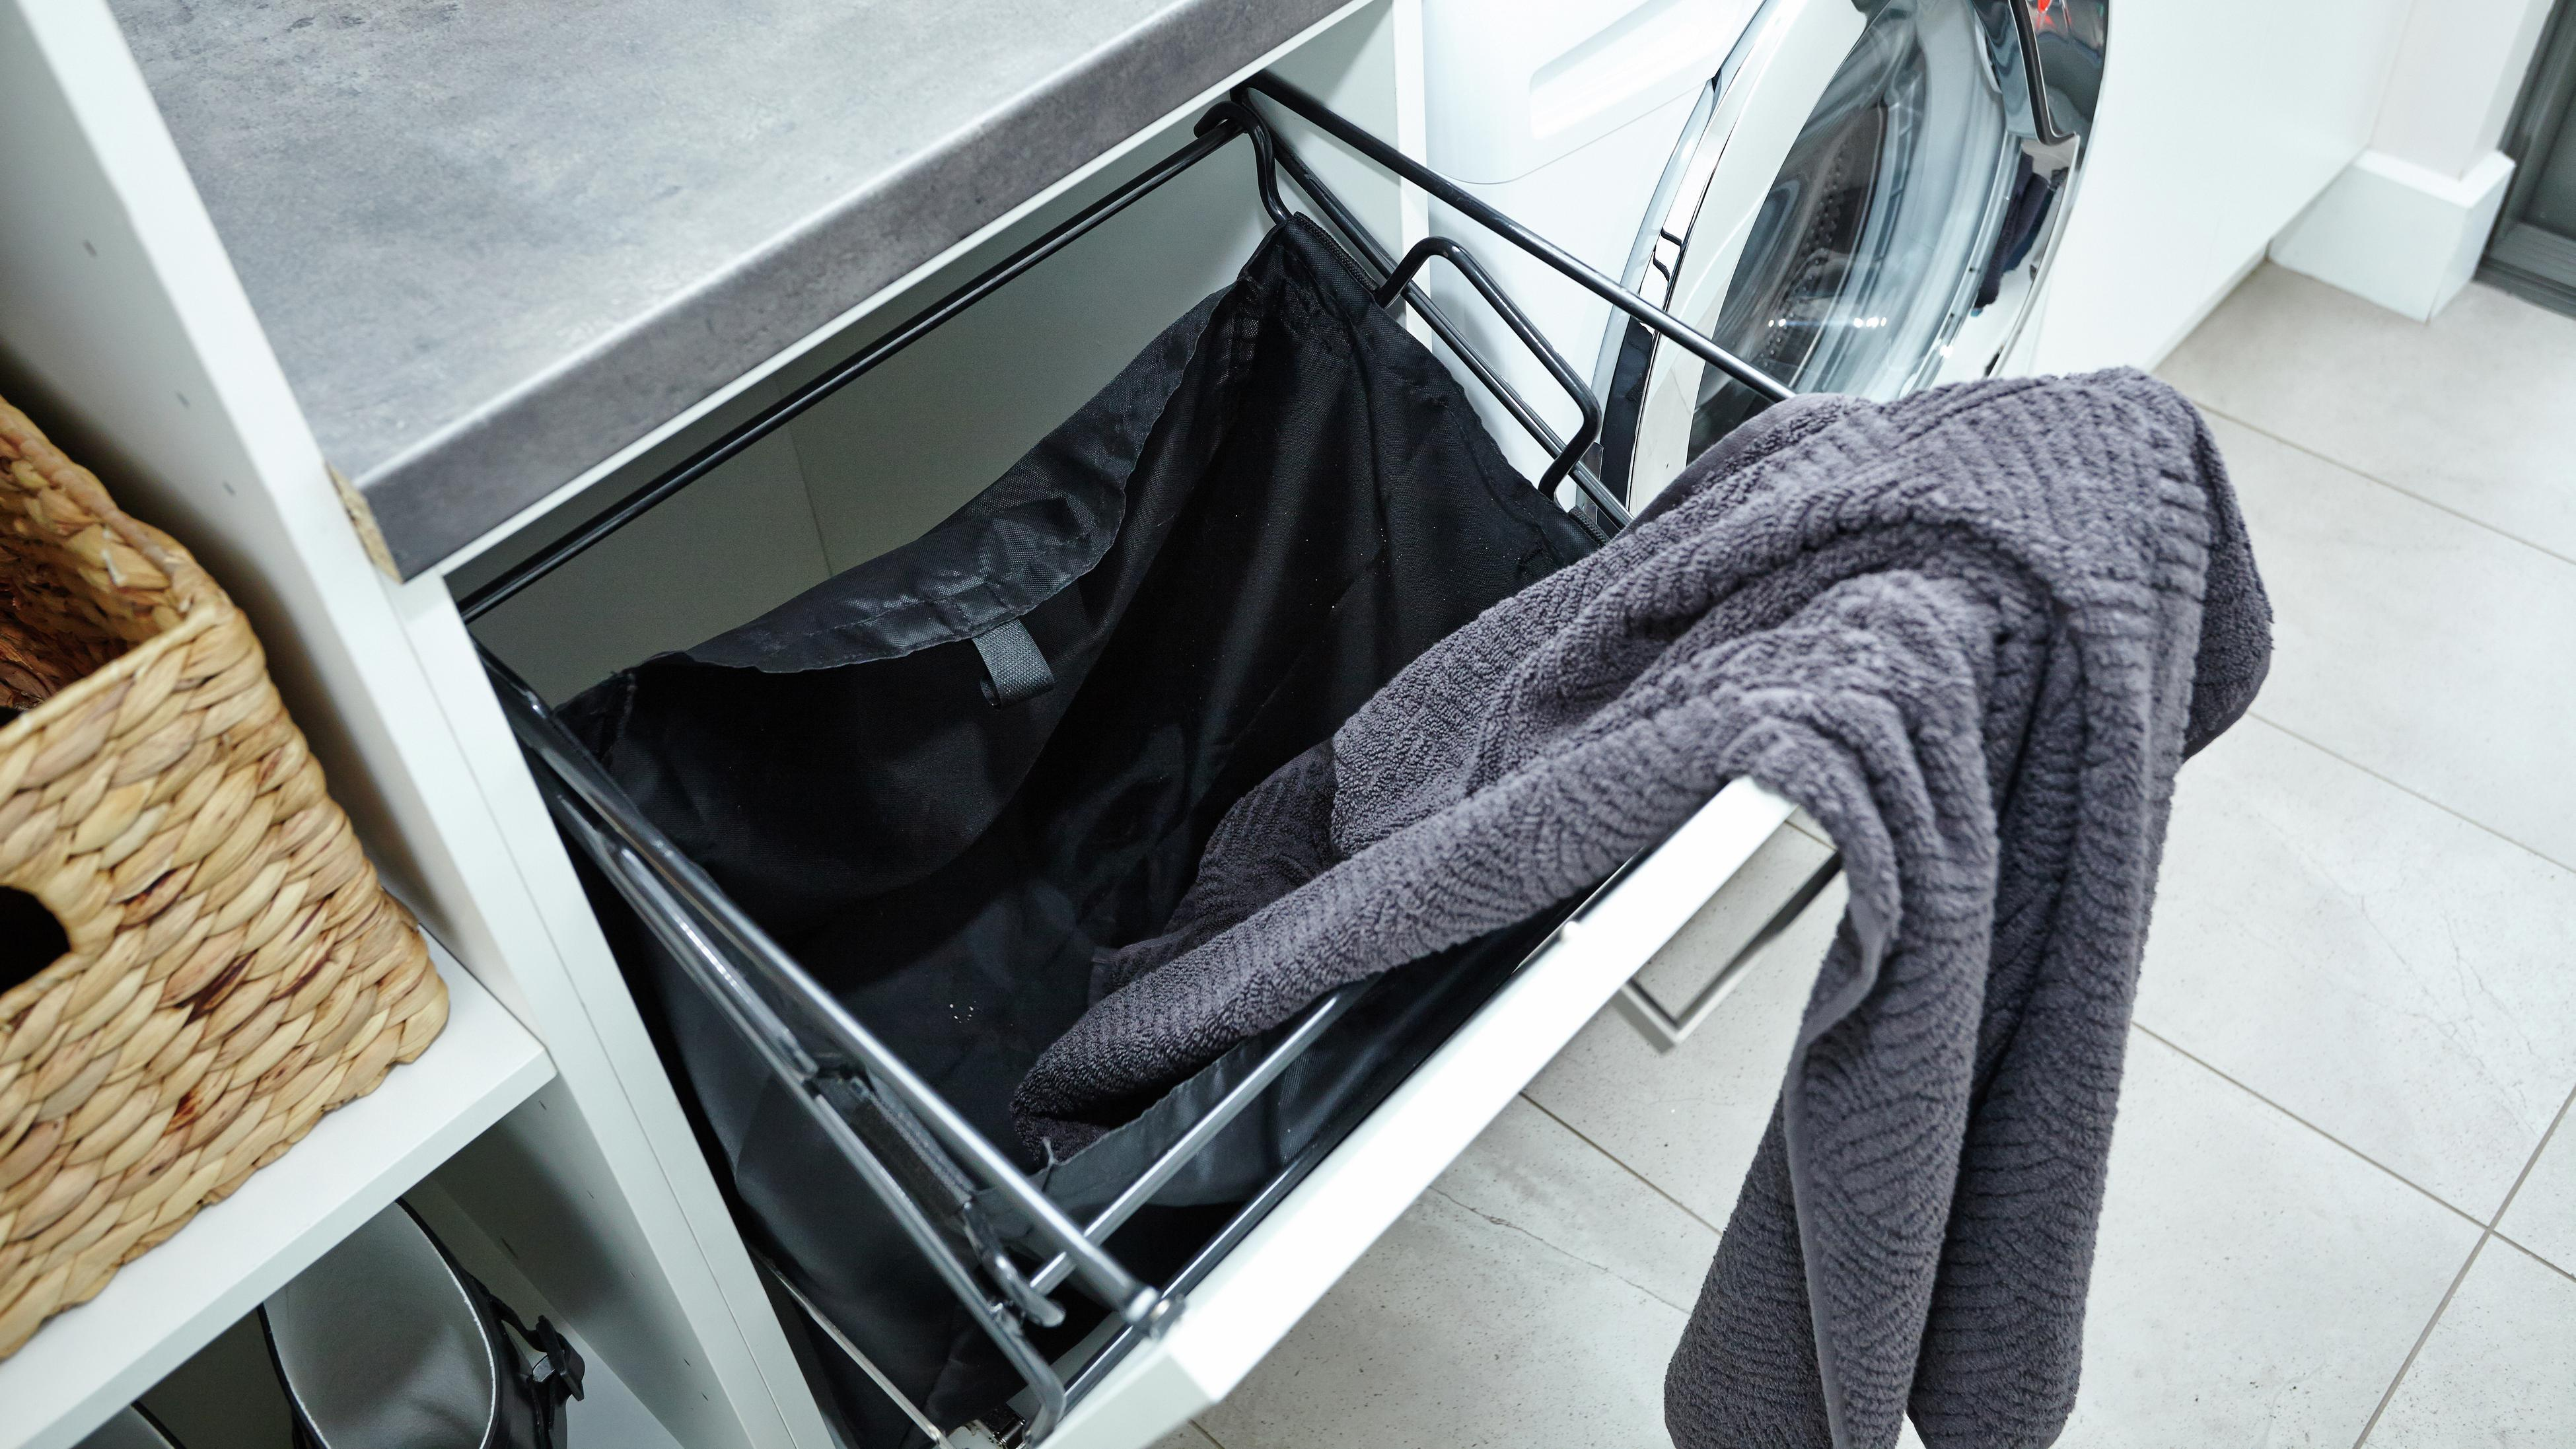 A 450mm laundry chute with a grey towel draped over it.